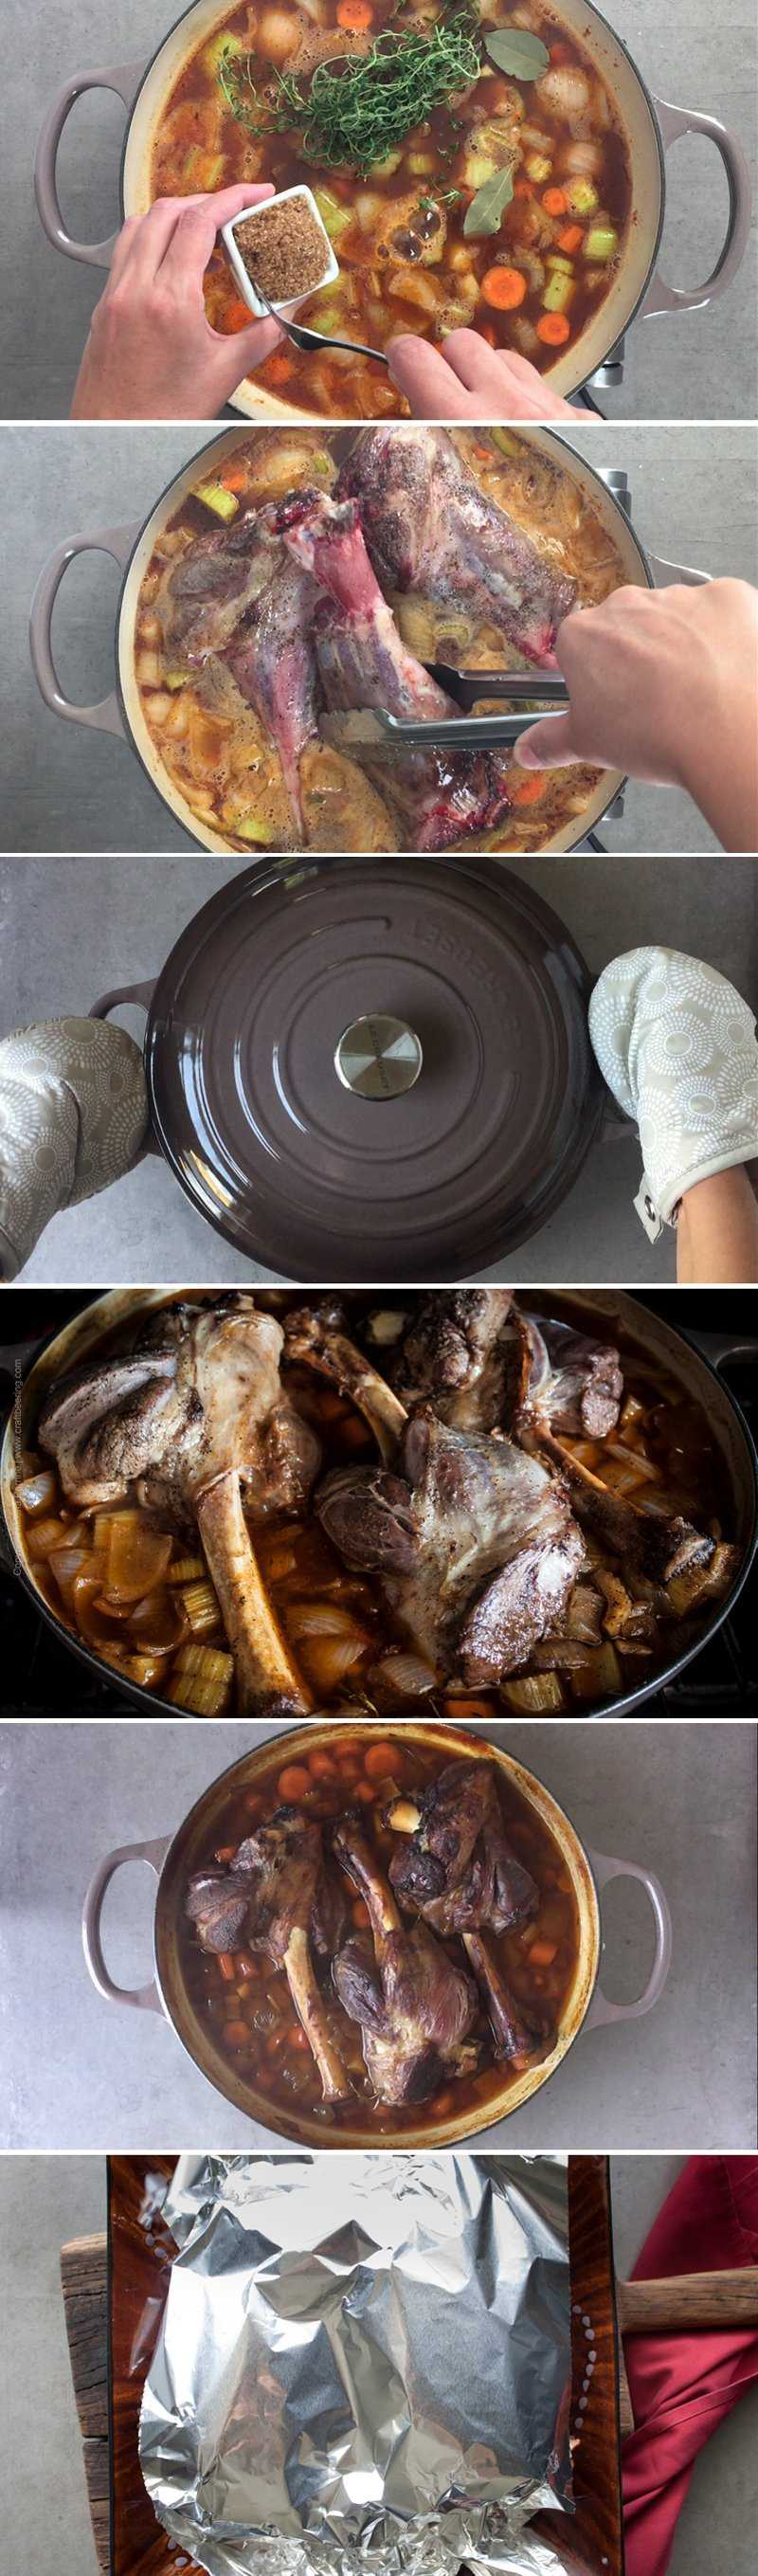 How to braise lamb shanks - step by step.